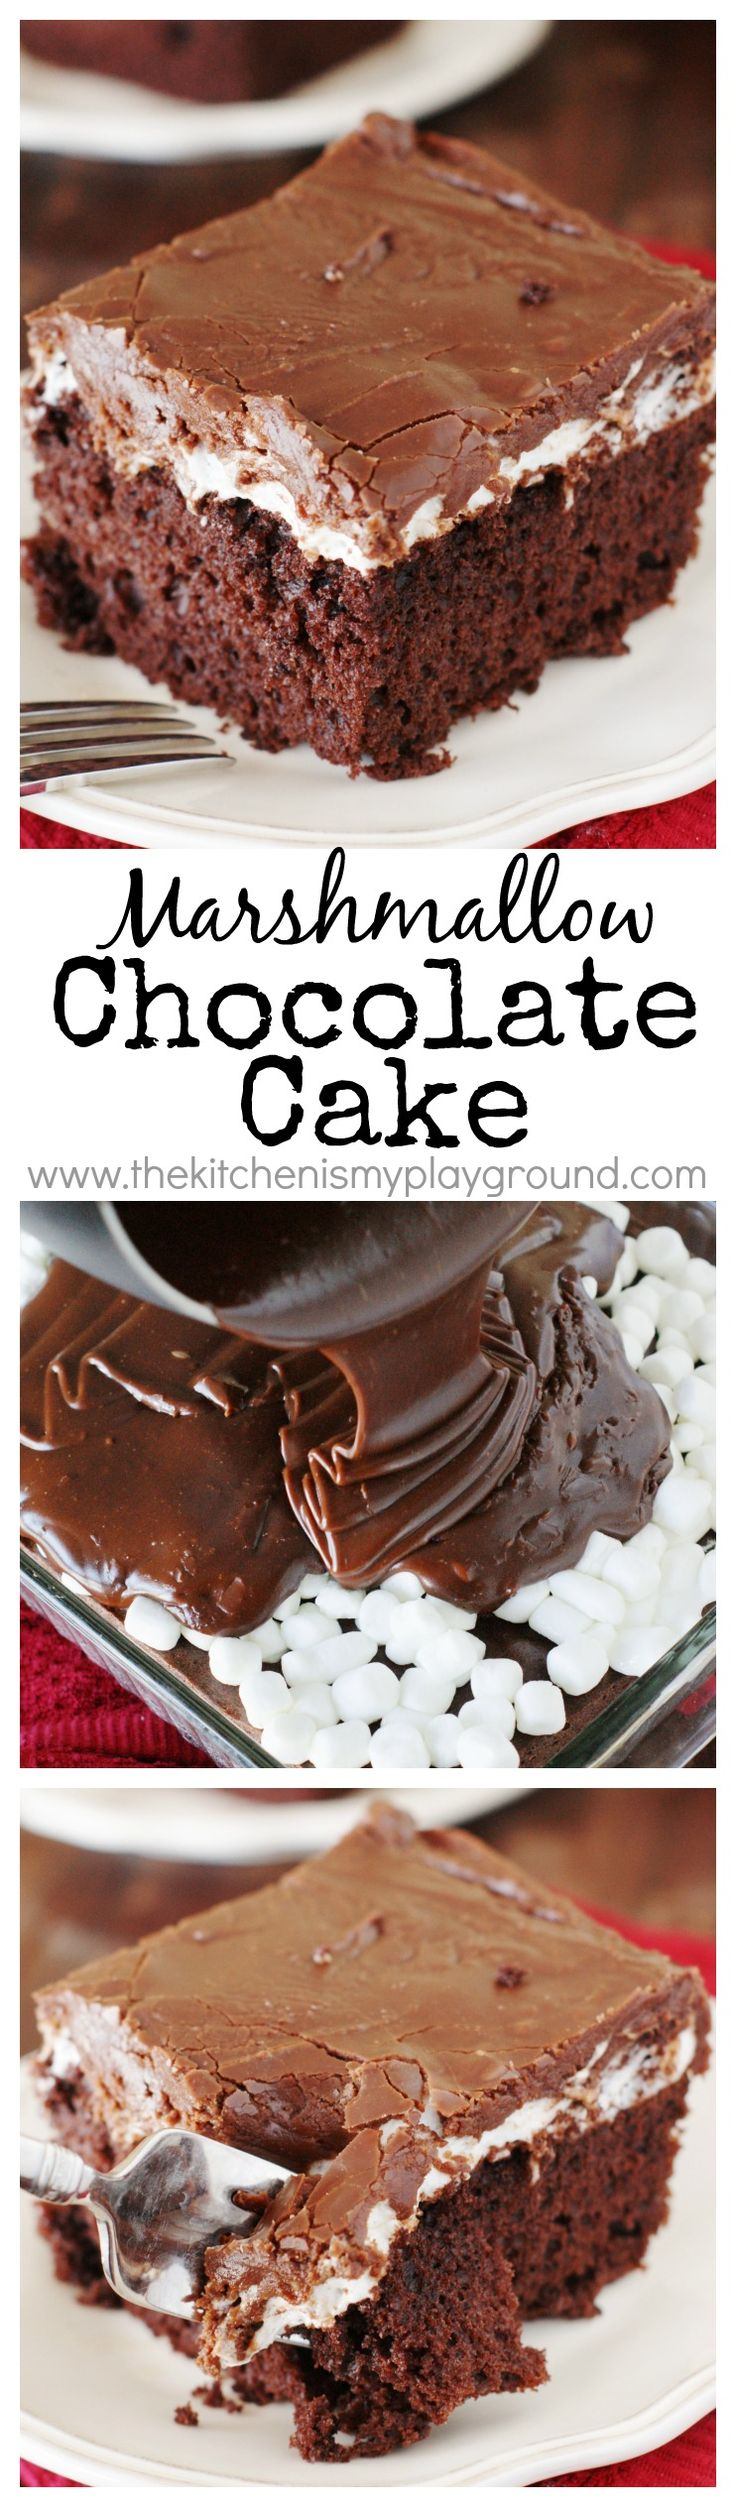 Marshmallow Chocolate Cake ~ Tender & tasty chocolate cake topped with a layer of gooey, melty marshmallow and rich